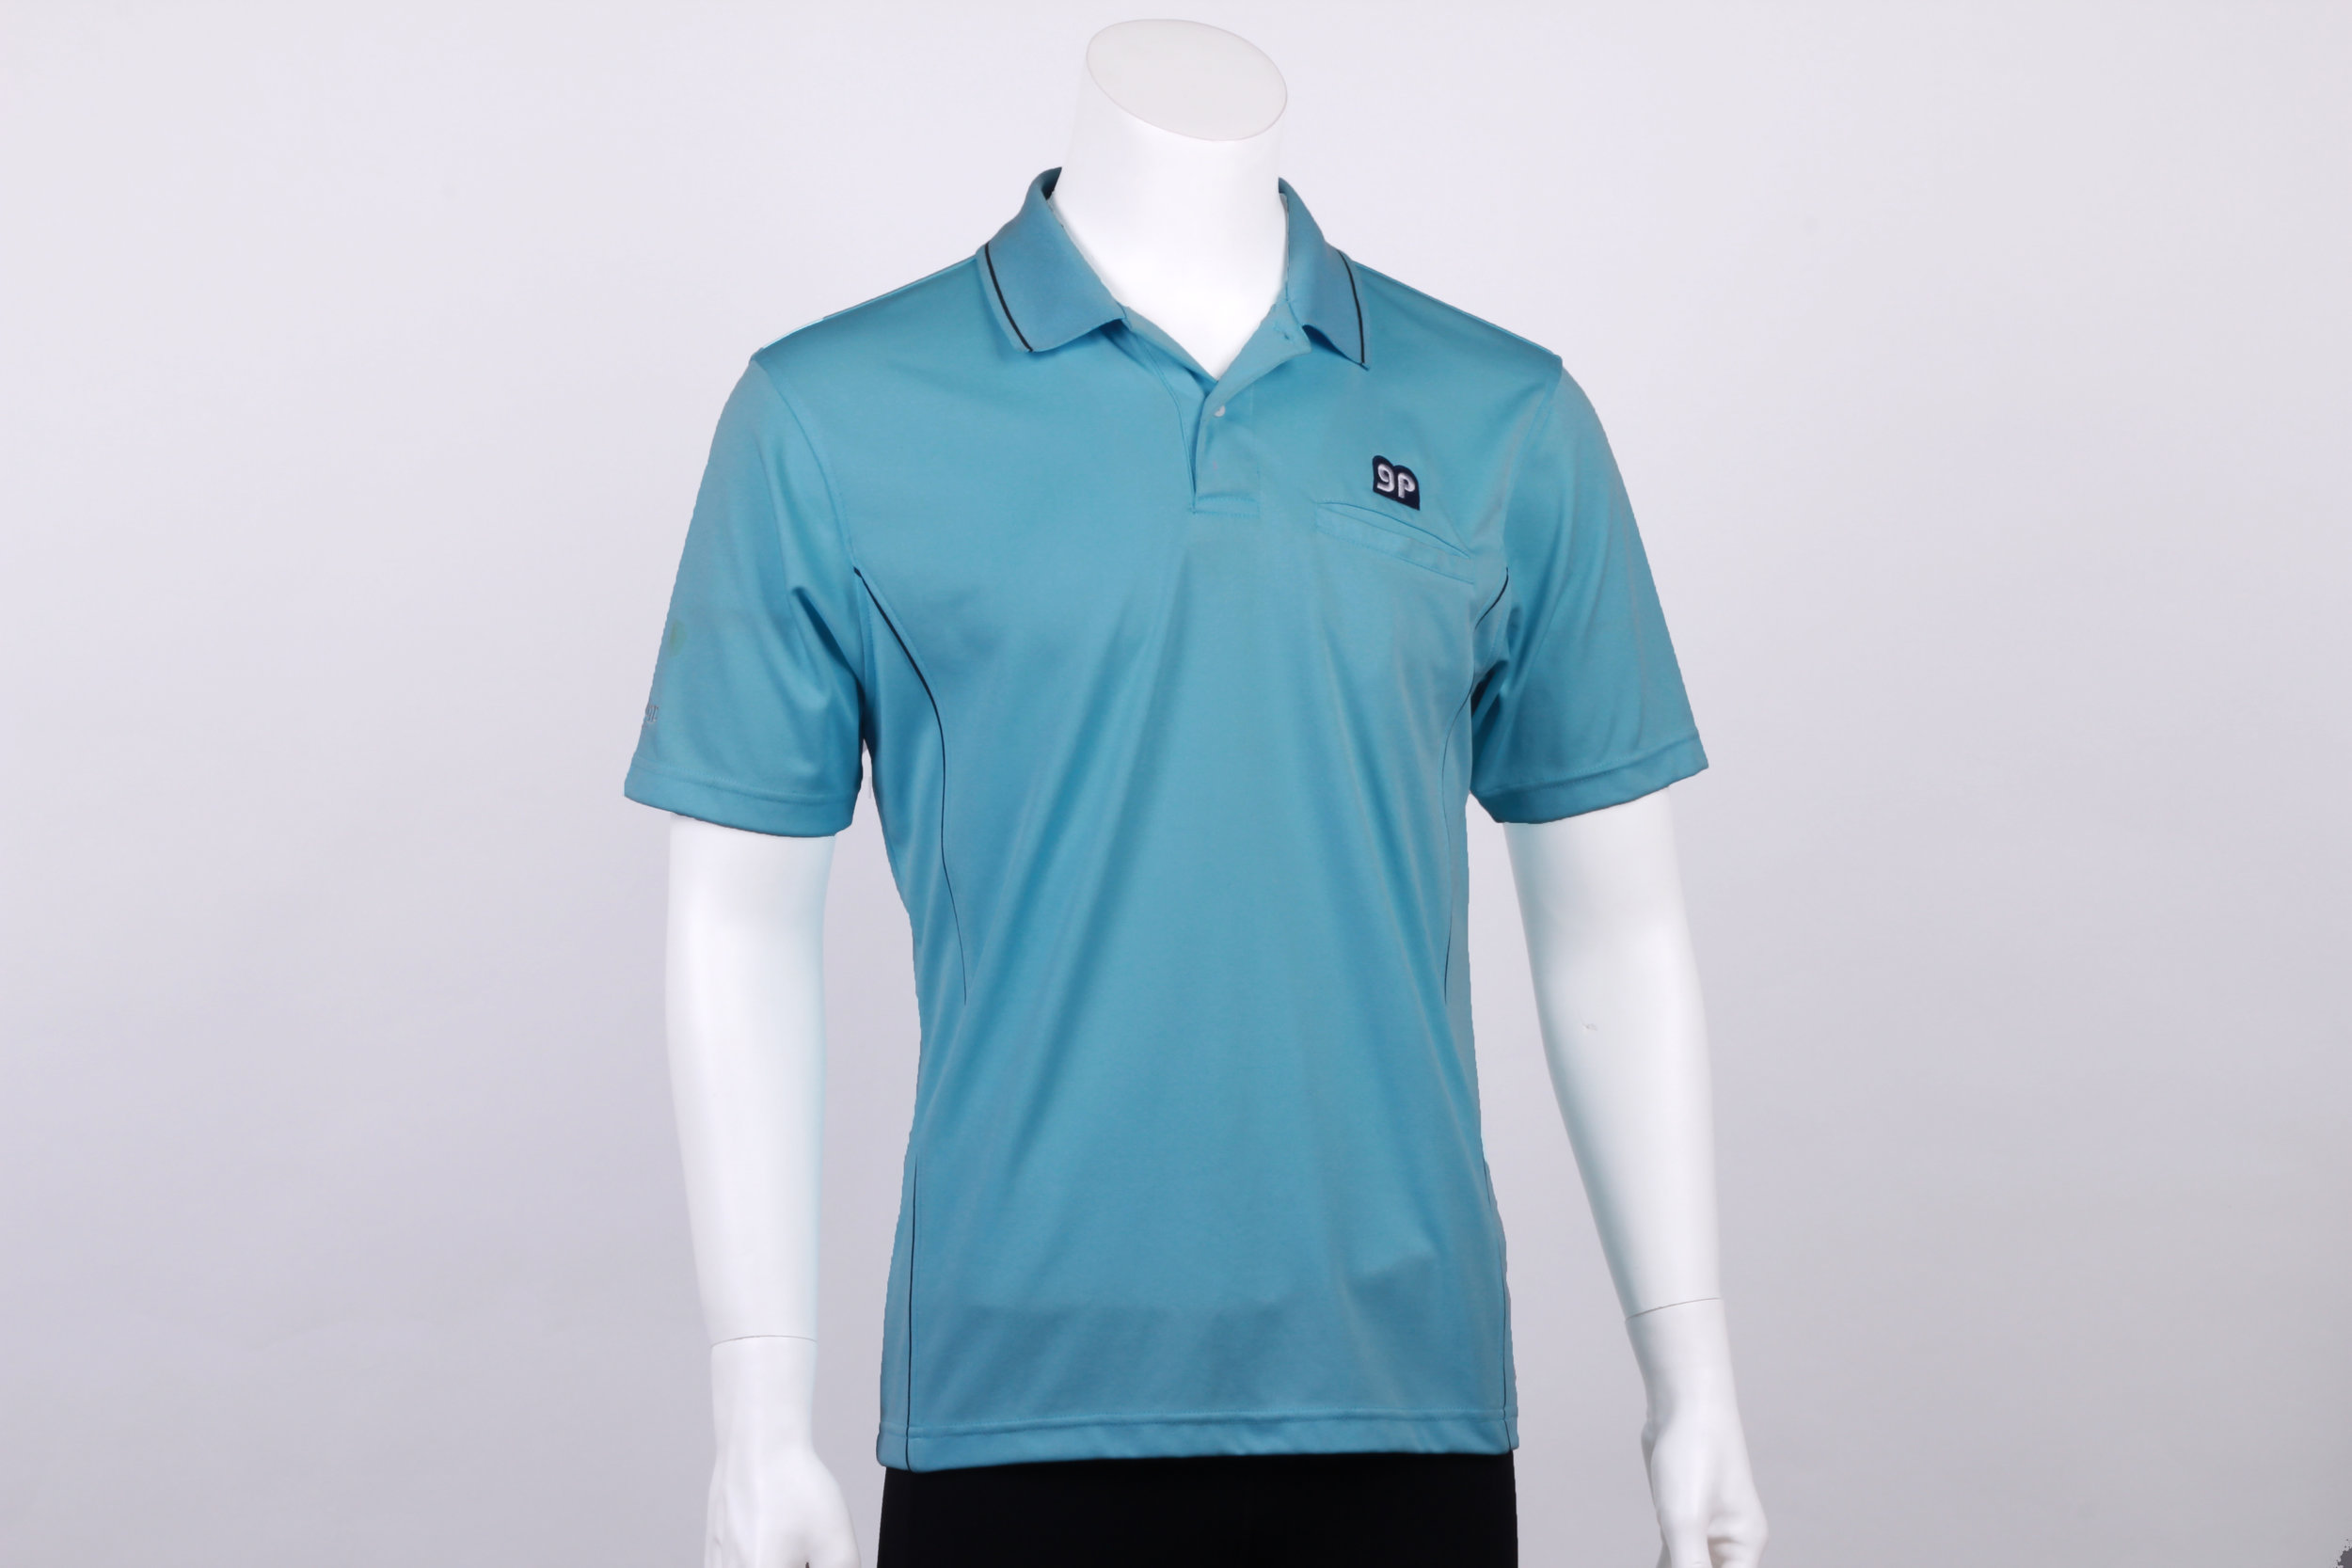 Standard Dri-fit polo